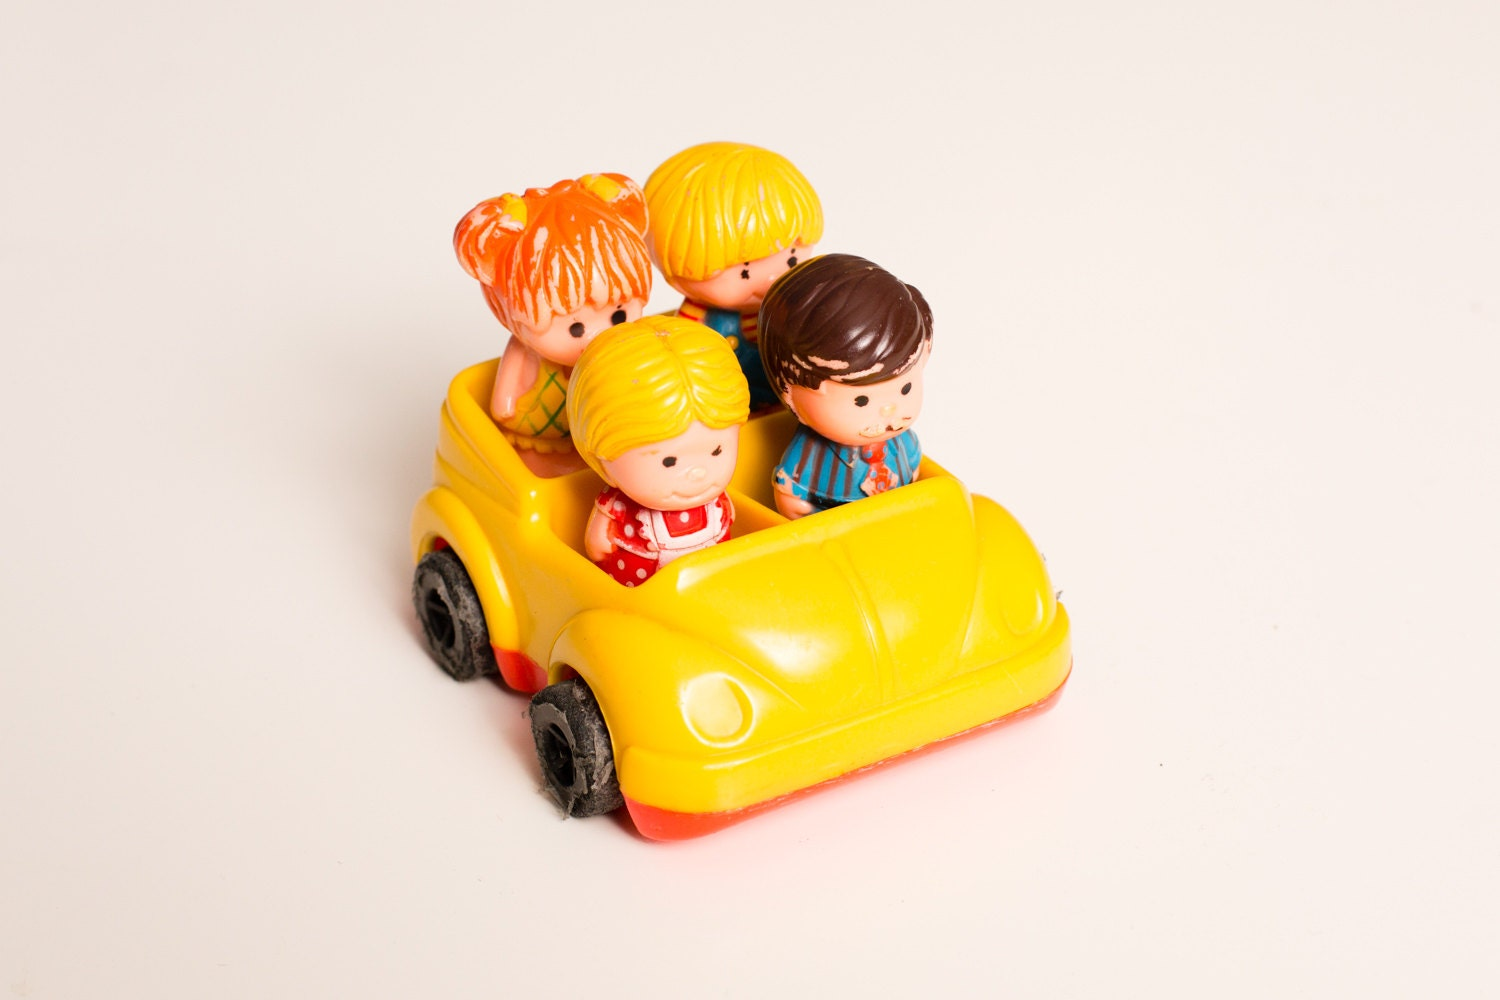 Classic Toys From The 70s : Vintage s tree tots family car toys dad tremont mom kids